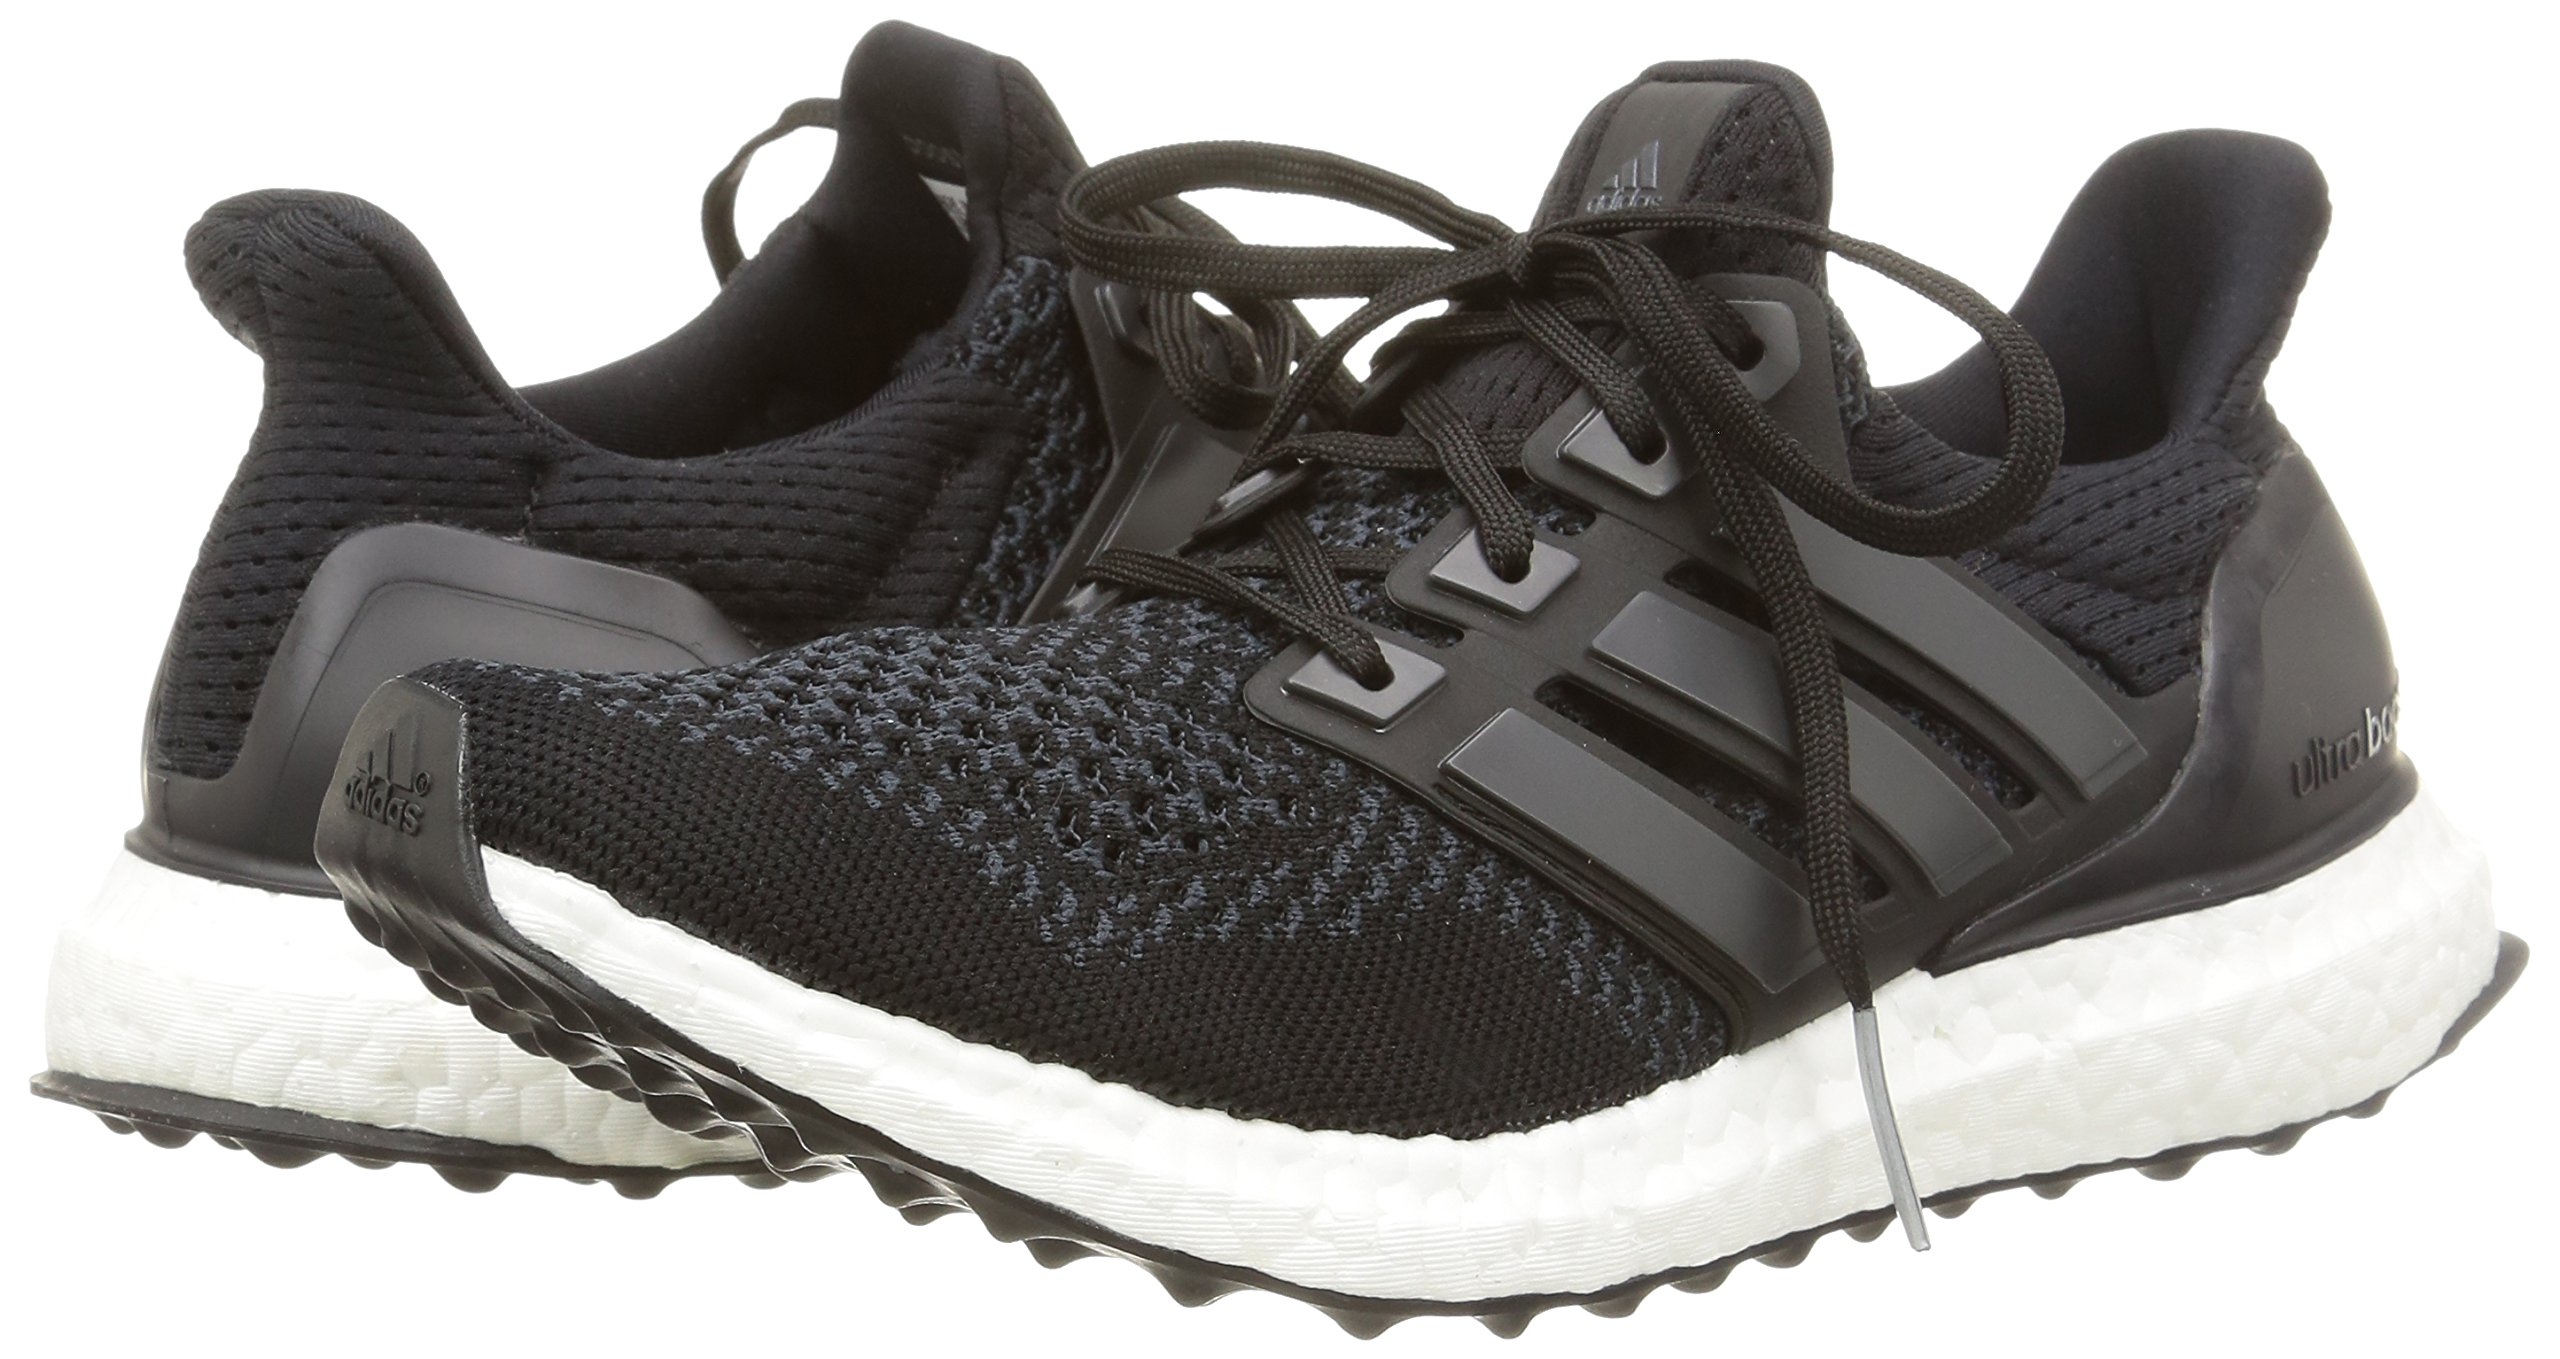 81cPyCCCL5L - adidas Ultra Boost, Women's Running Shoes